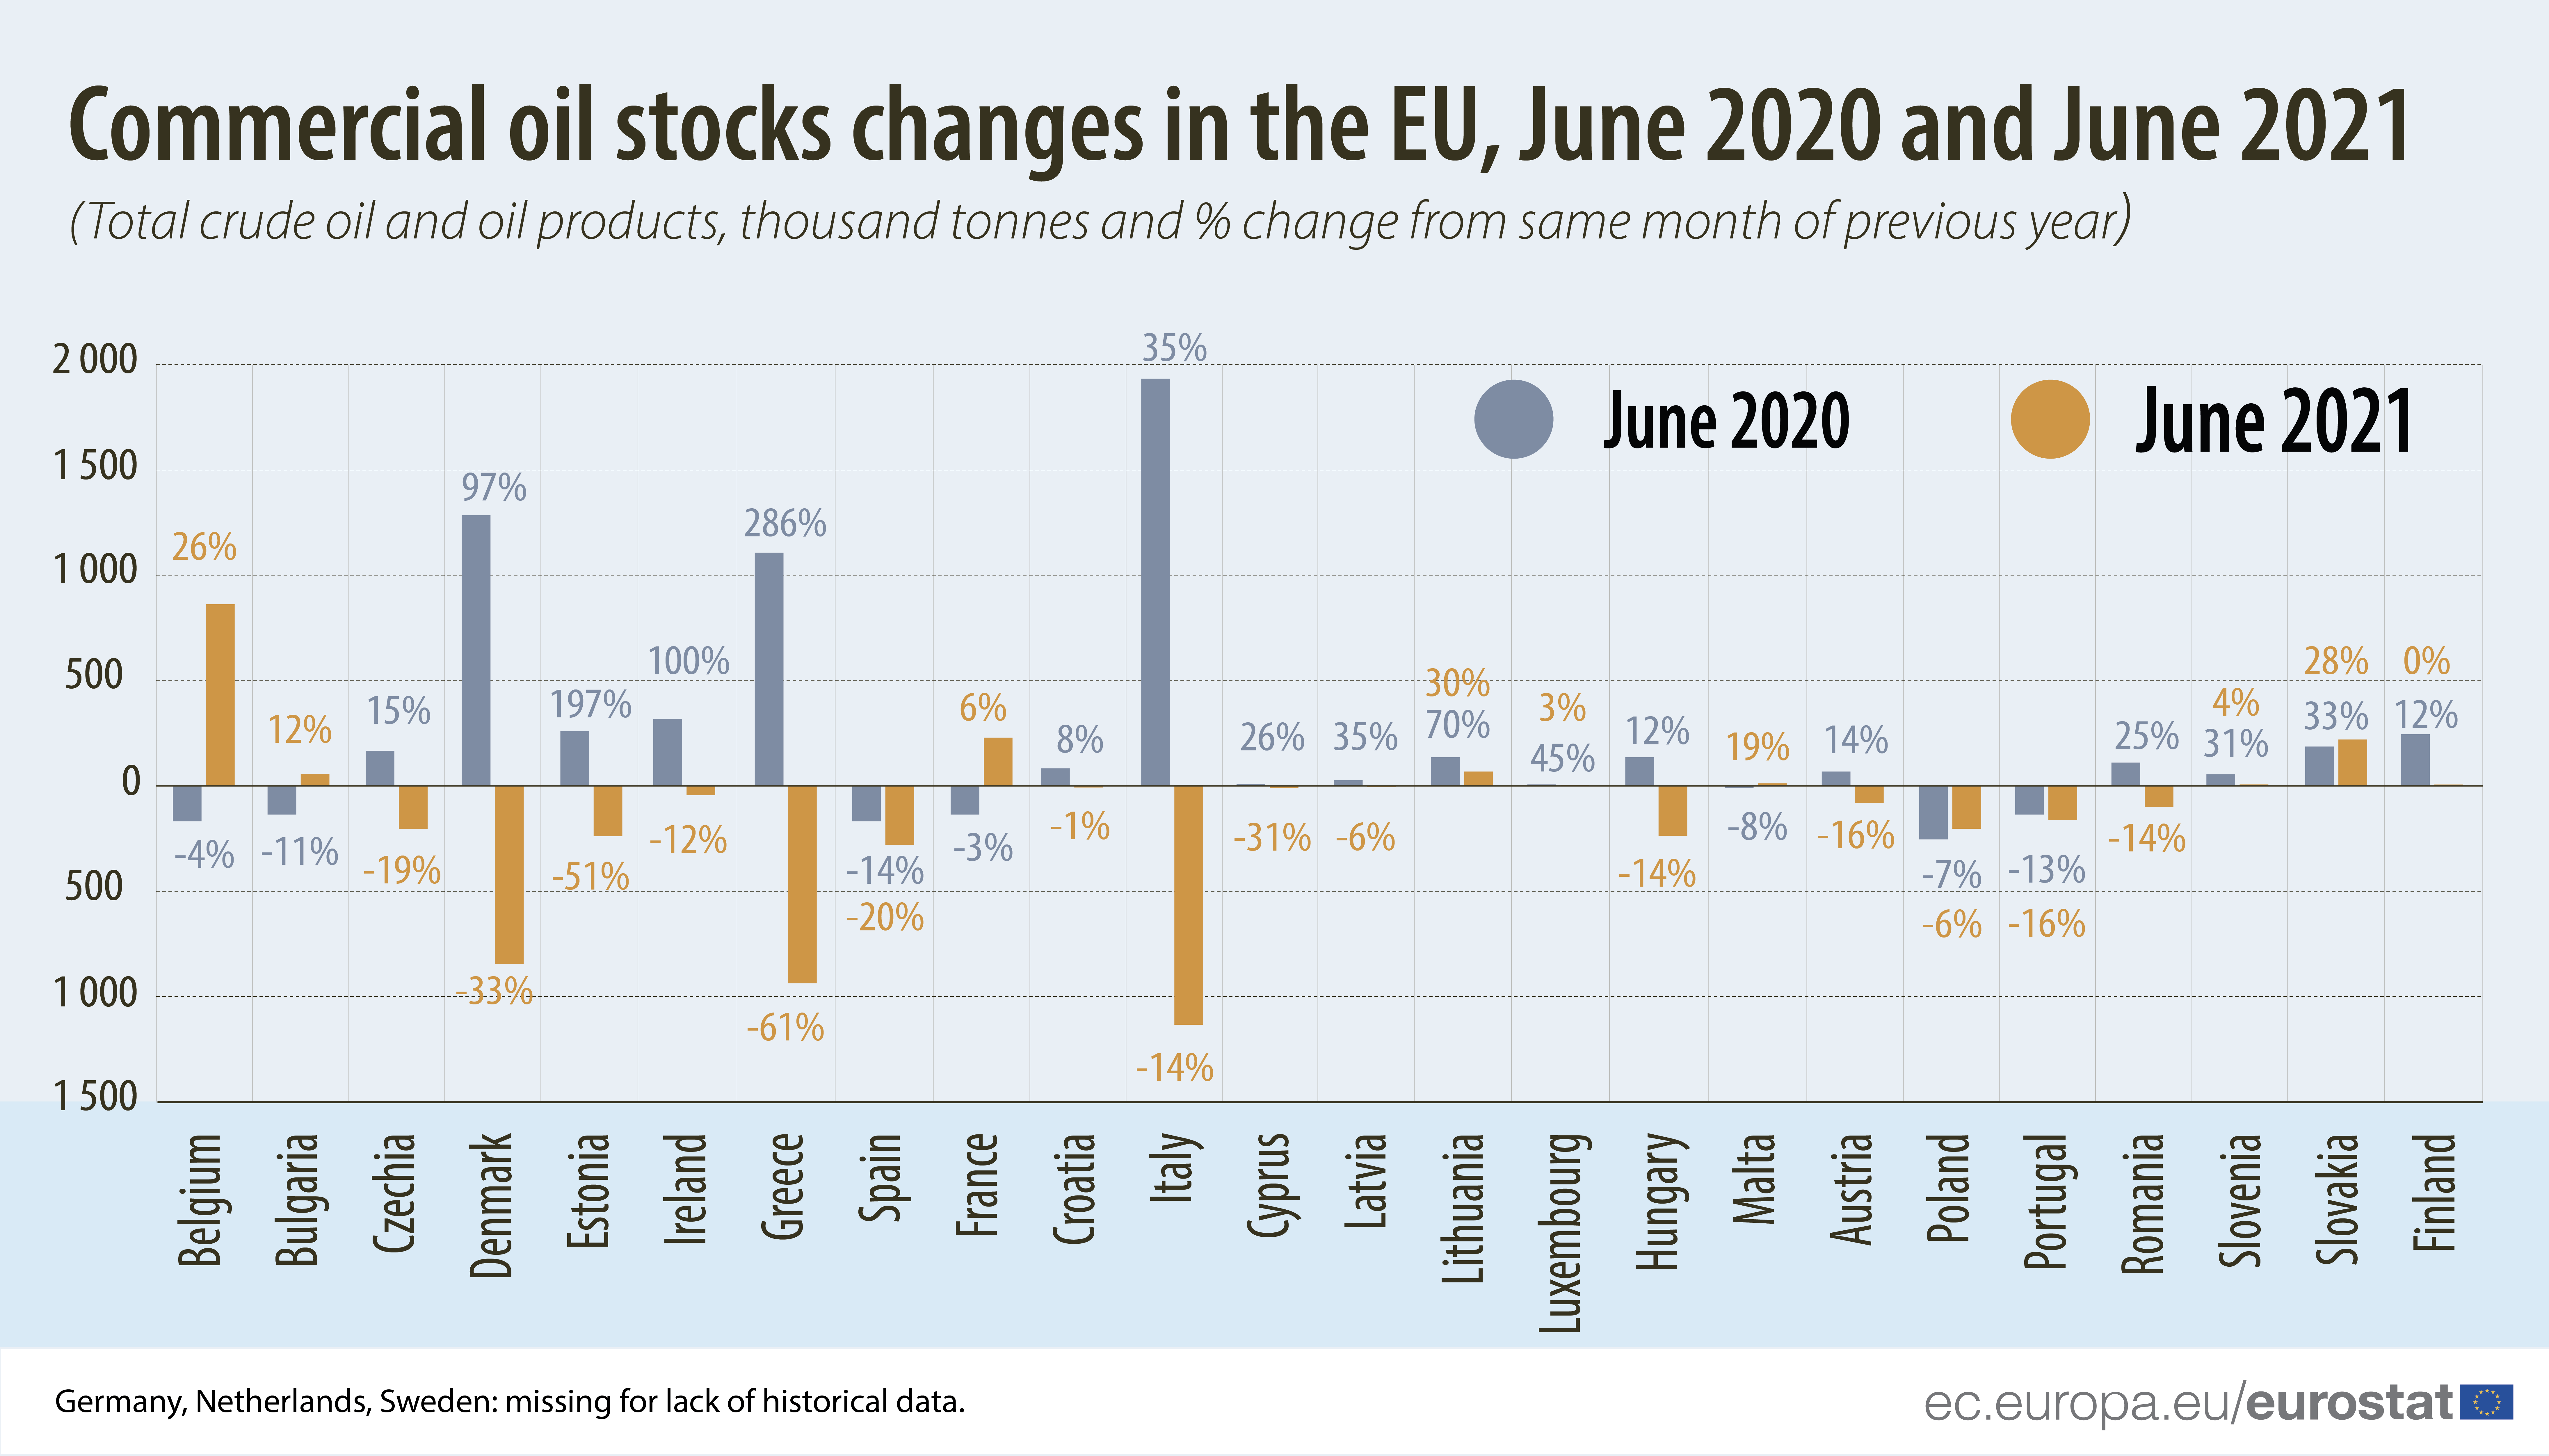 Bar graph: Commercial oil stocks changes in the EU, comparing June 2020 with June 2021, total crude oil and oil products in thousand tonnes and % change from same month of previous year